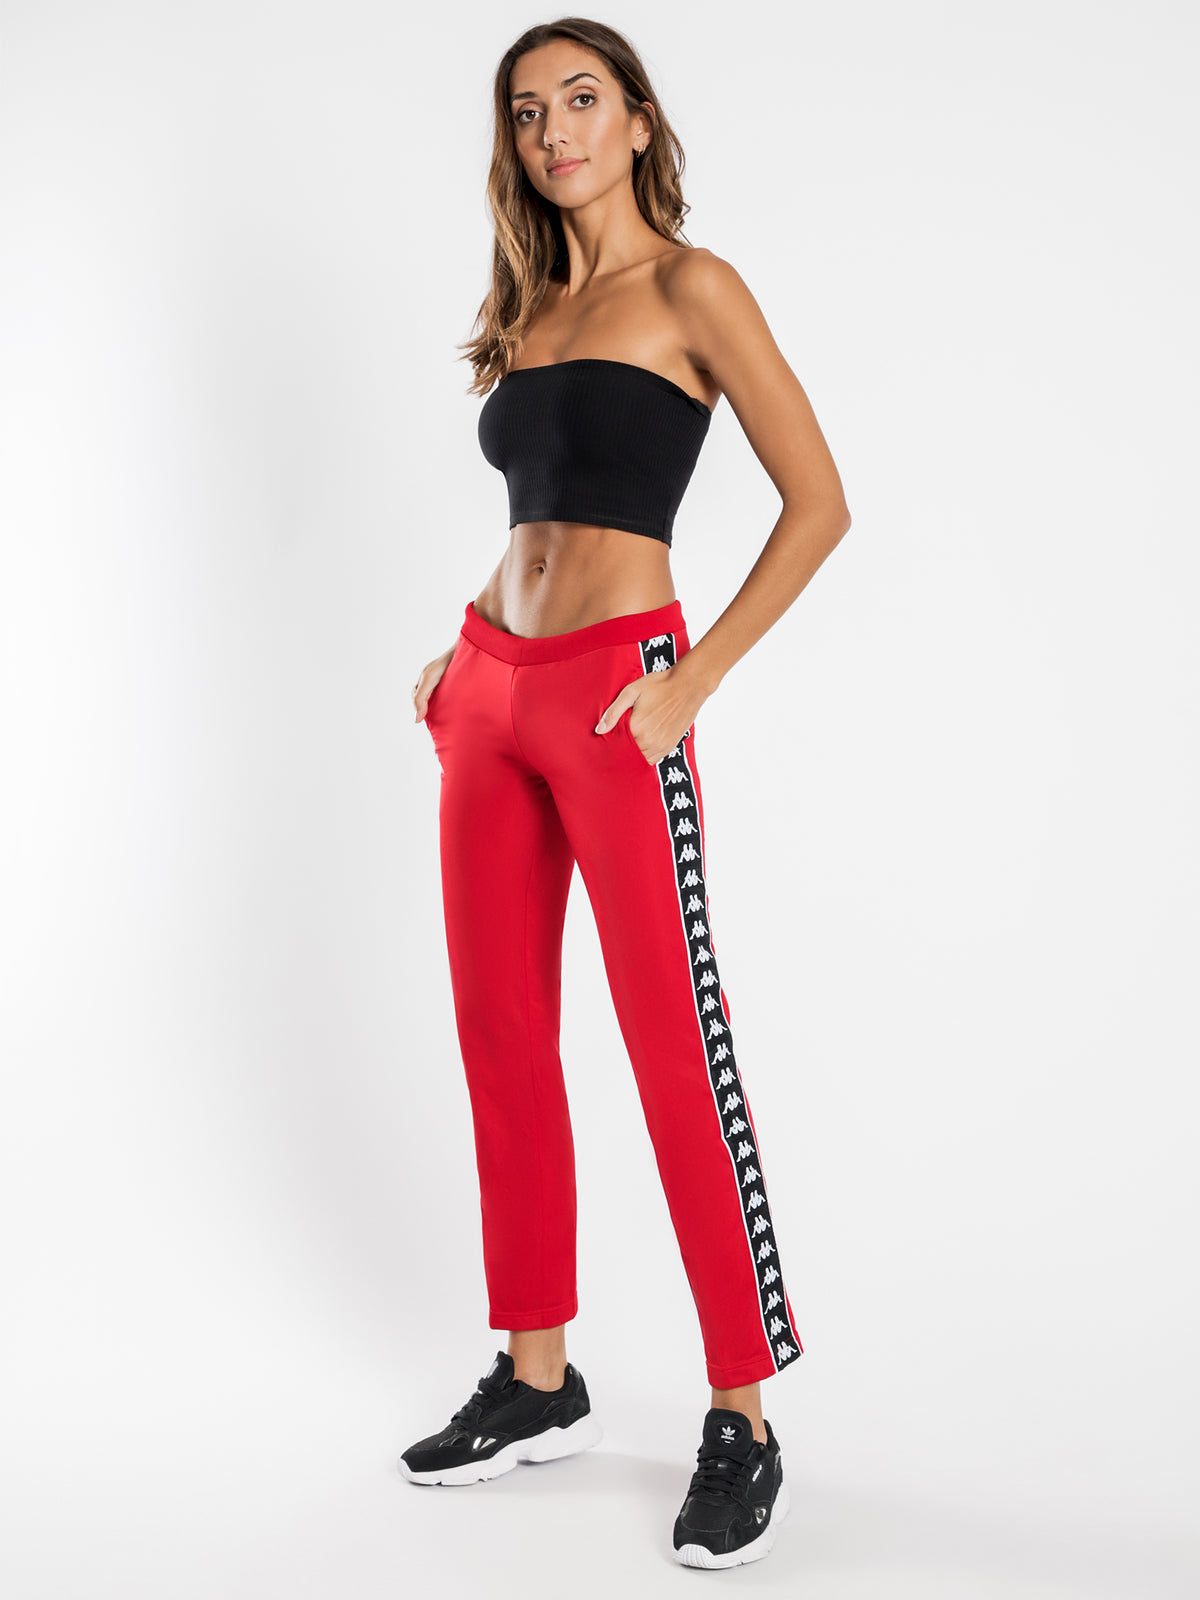 222 Banda Wastoria Track Pants in Red